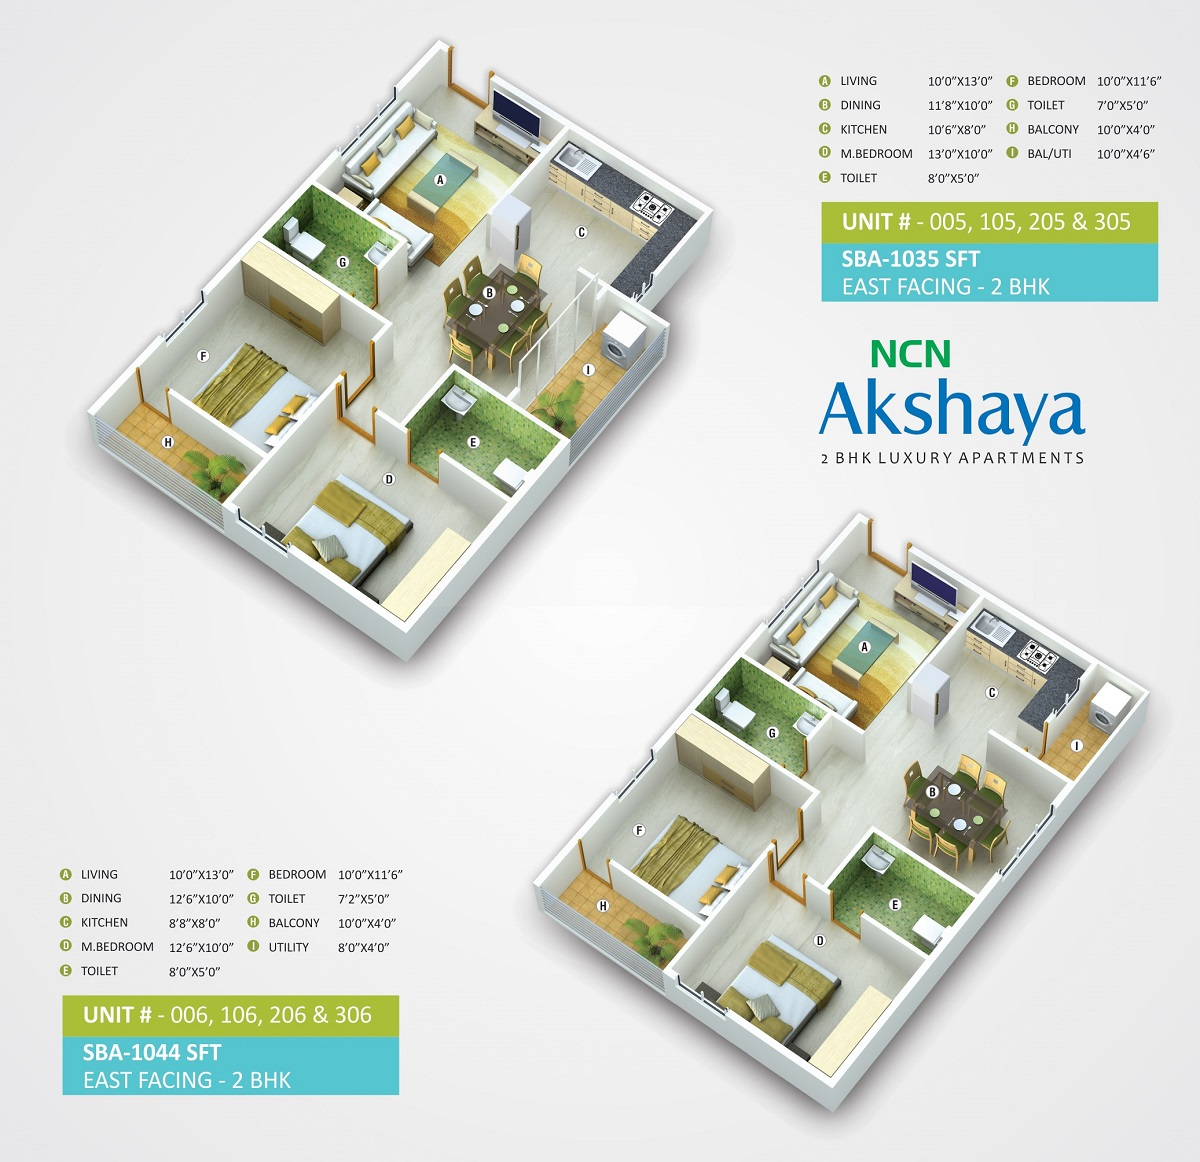 2 BHK North Facing 1044 sq ft Apartment